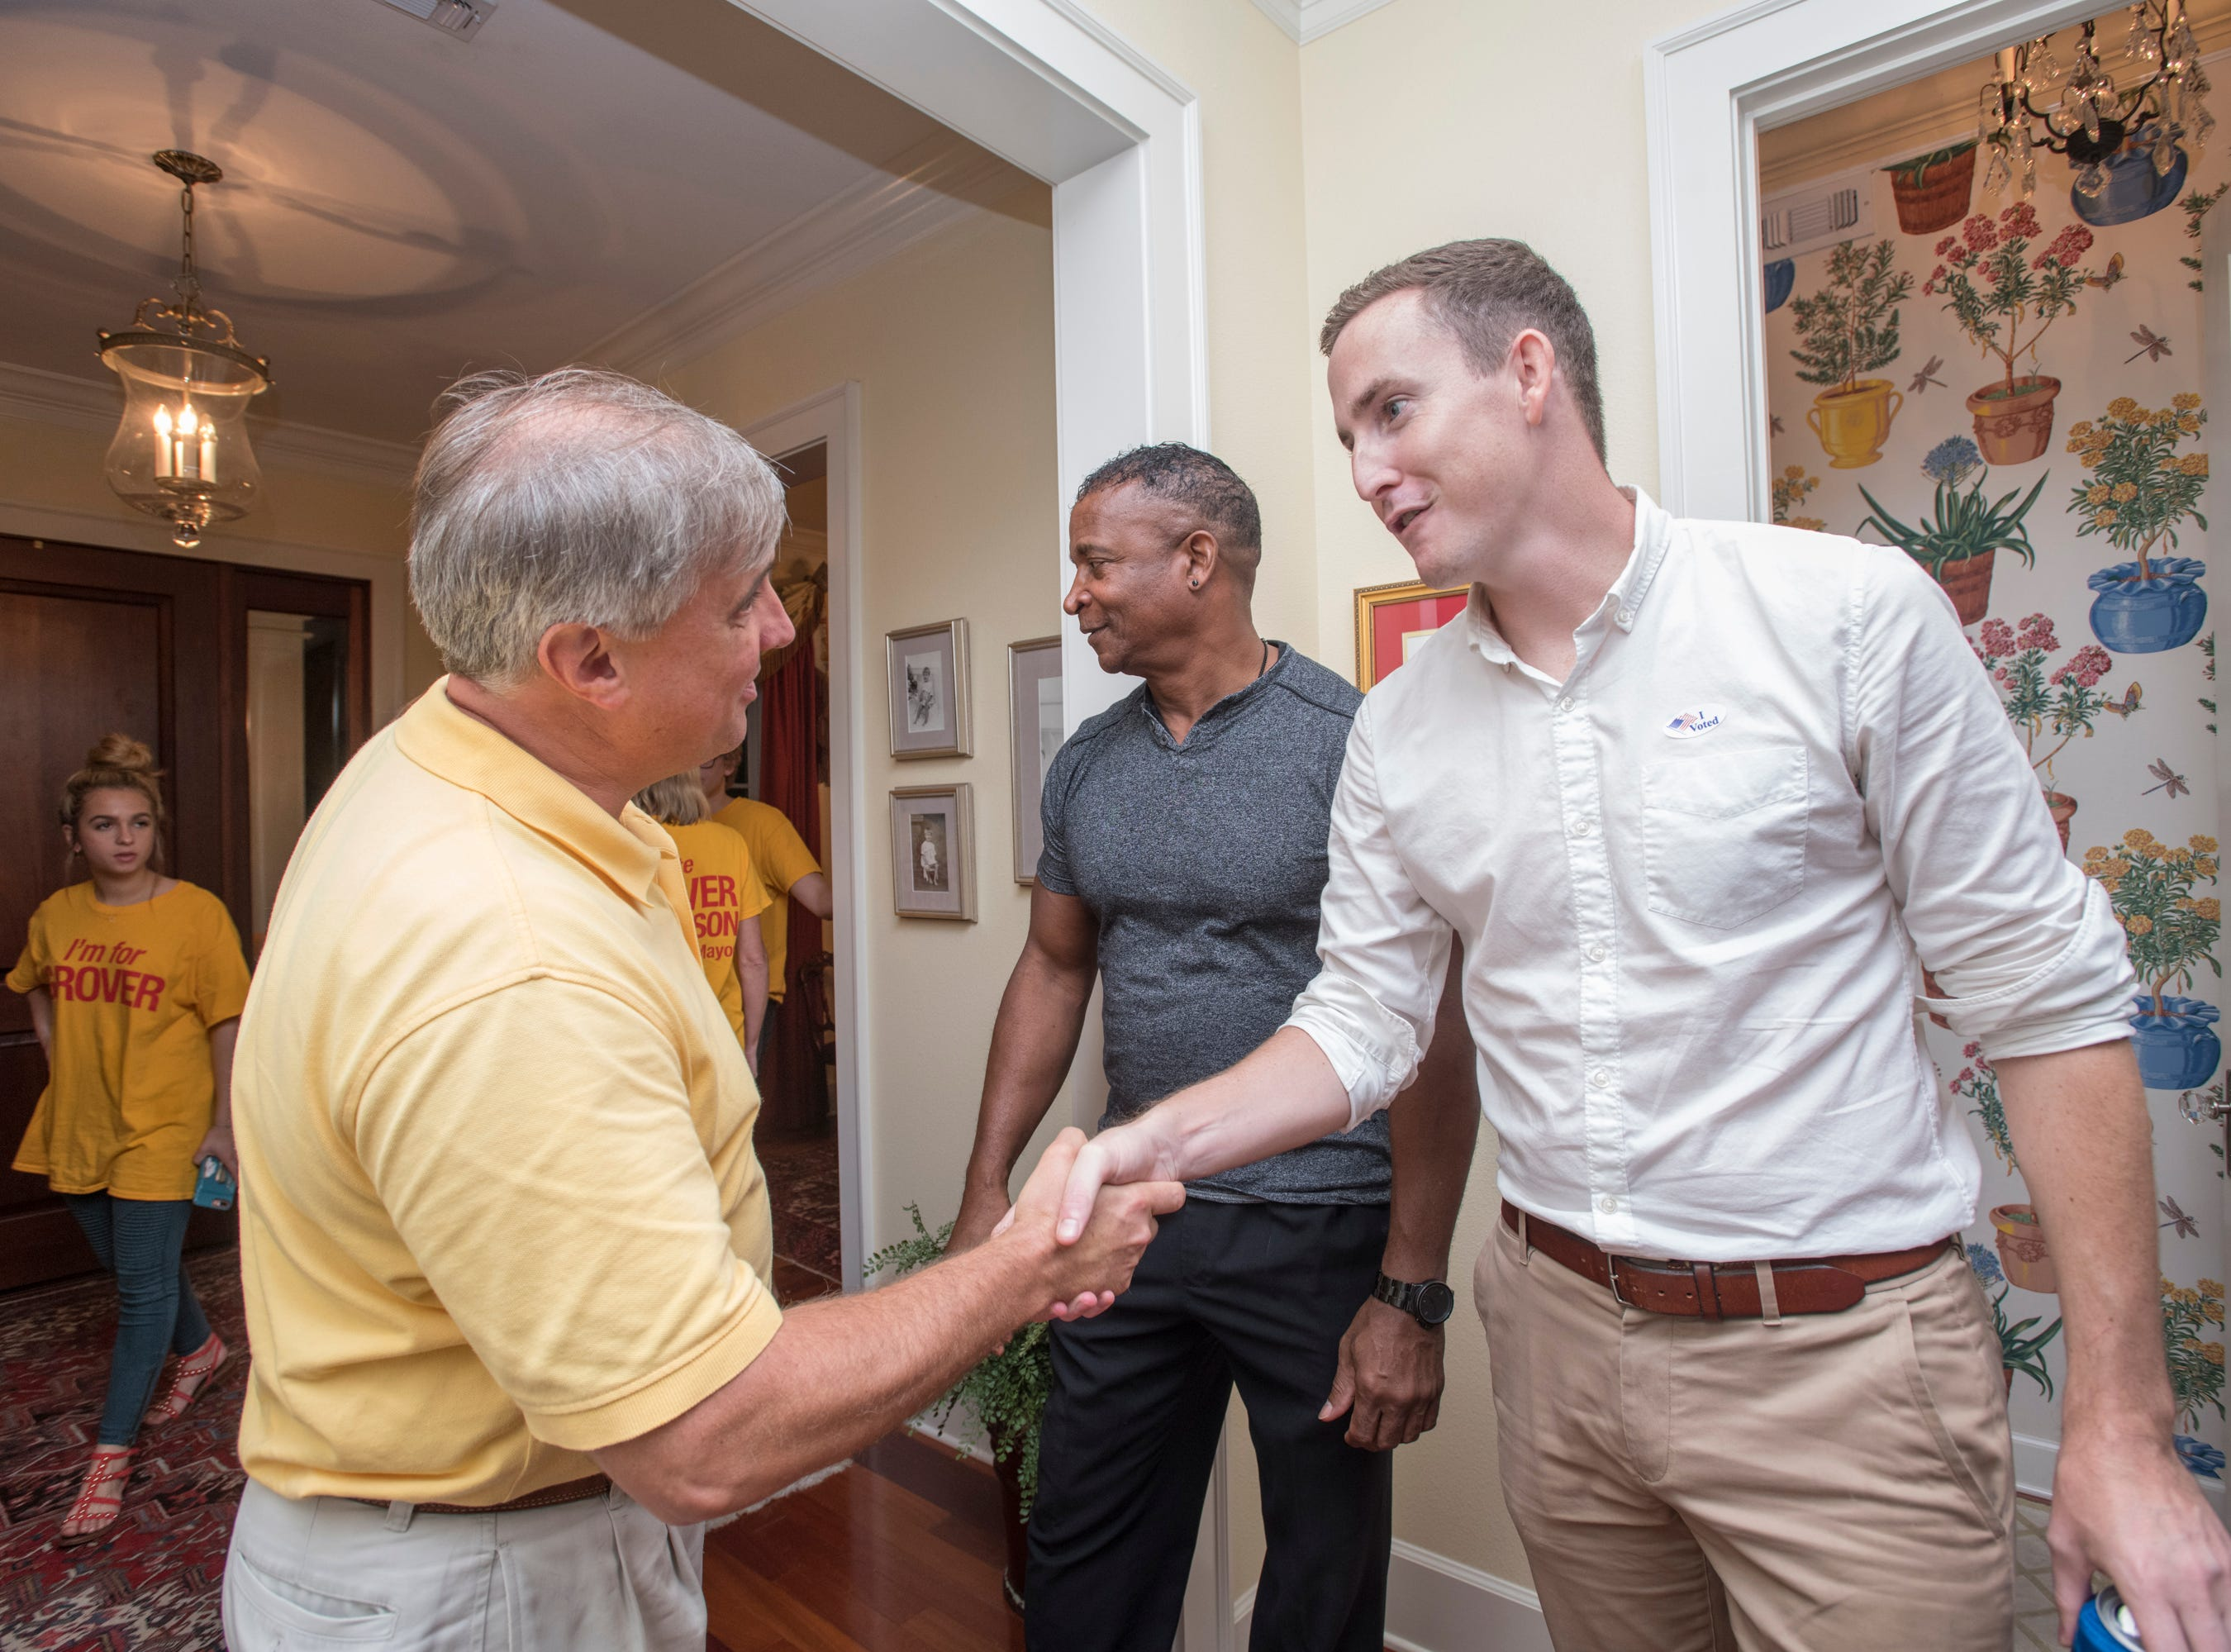 Penscola Mayoral candidate Grover Robinson, left, greets supporters on Election Night in Pensacola on Tuesday, November 6, 2018.